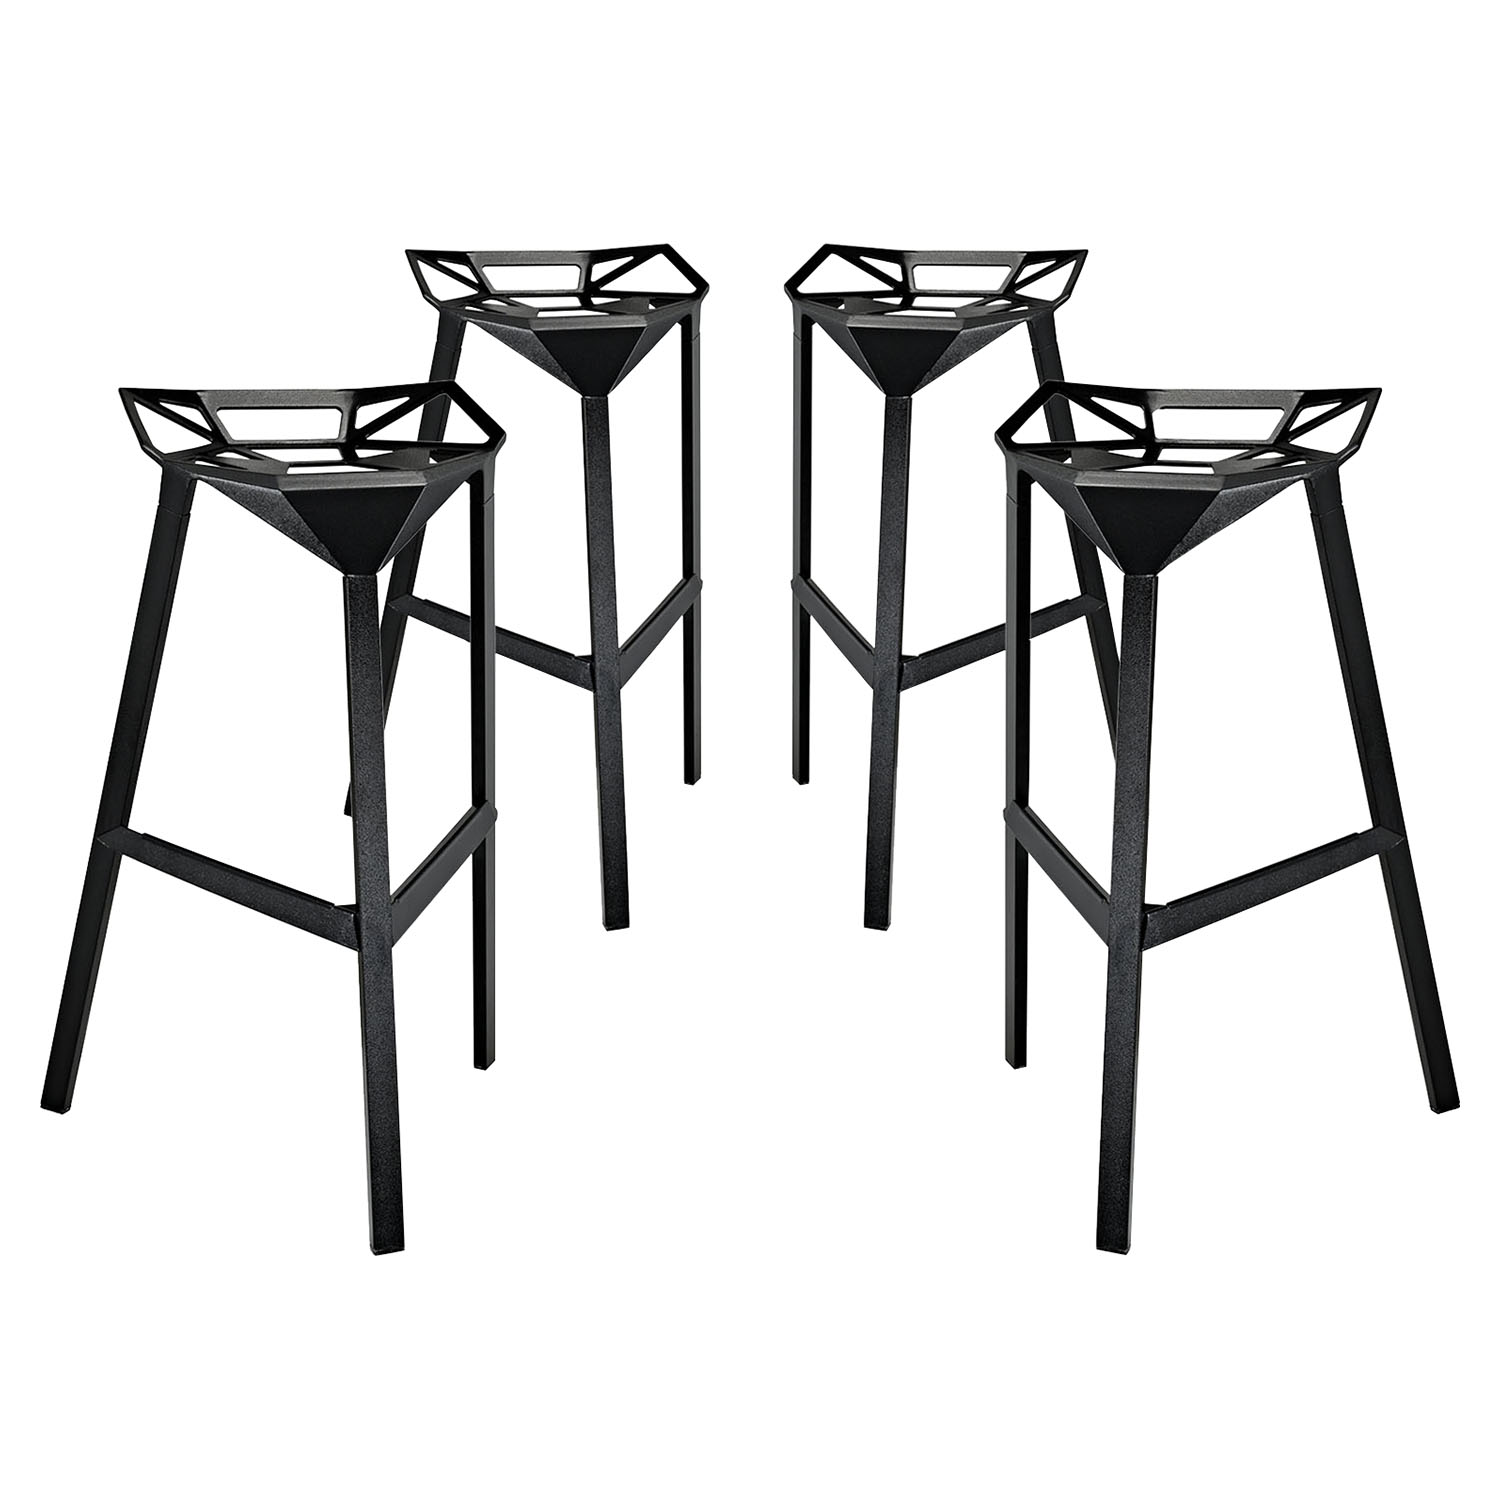 Launch Aluminum Stacking Bar Stool - Black (Set of 4)